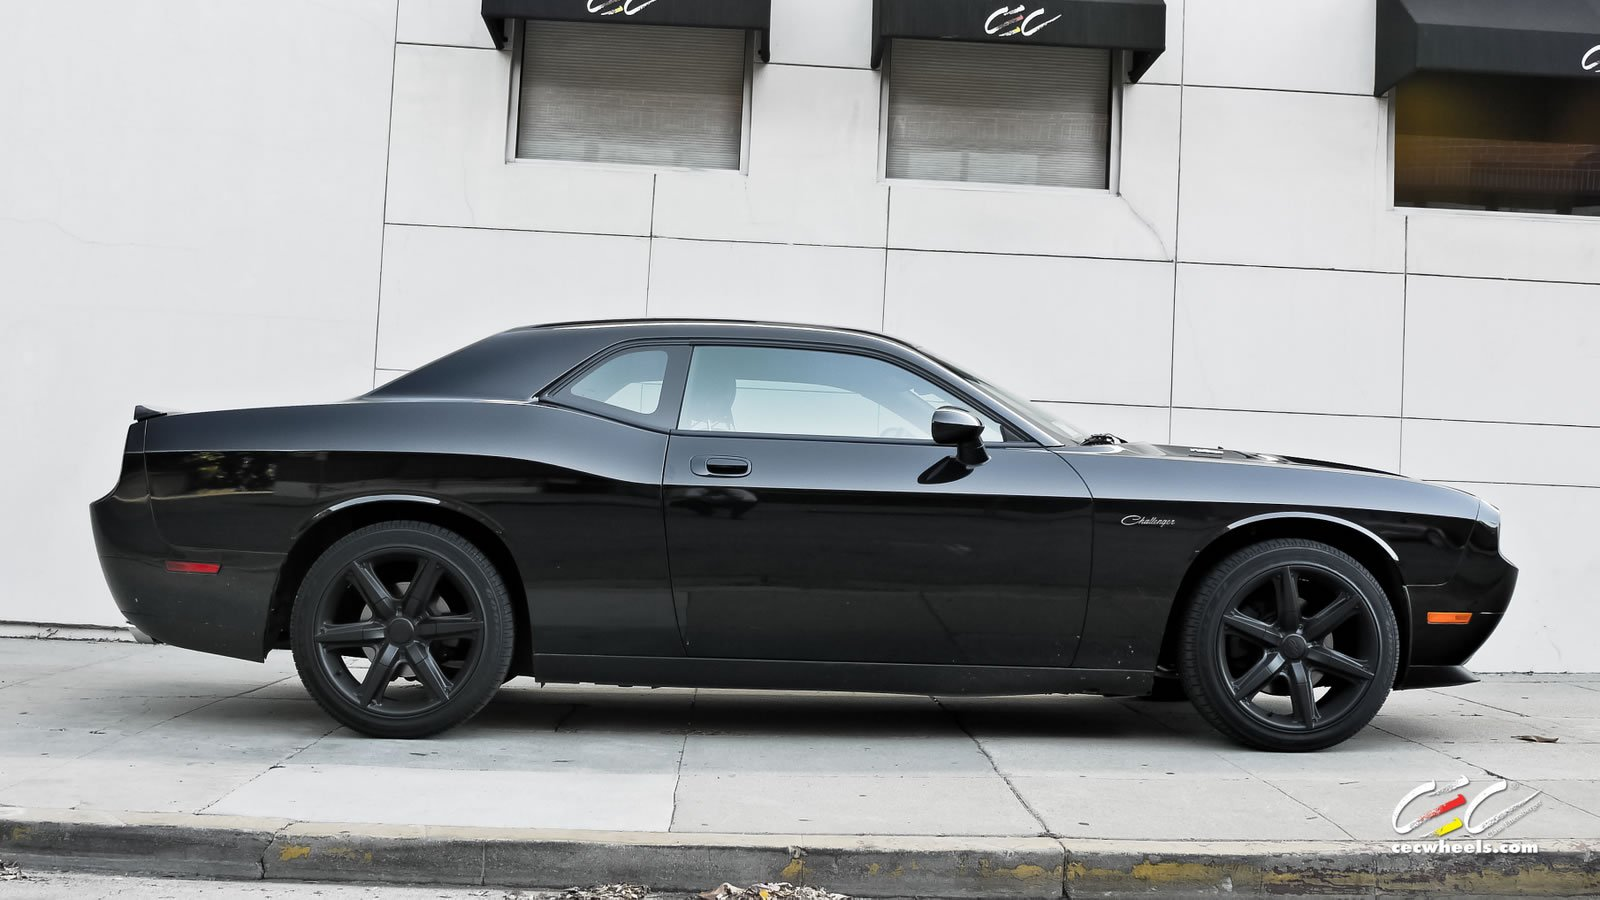 2015 cars cec tuning wheels dodge challenger rt wallpaper. Black Bedroom Furniture Sets. Home Design Ideas